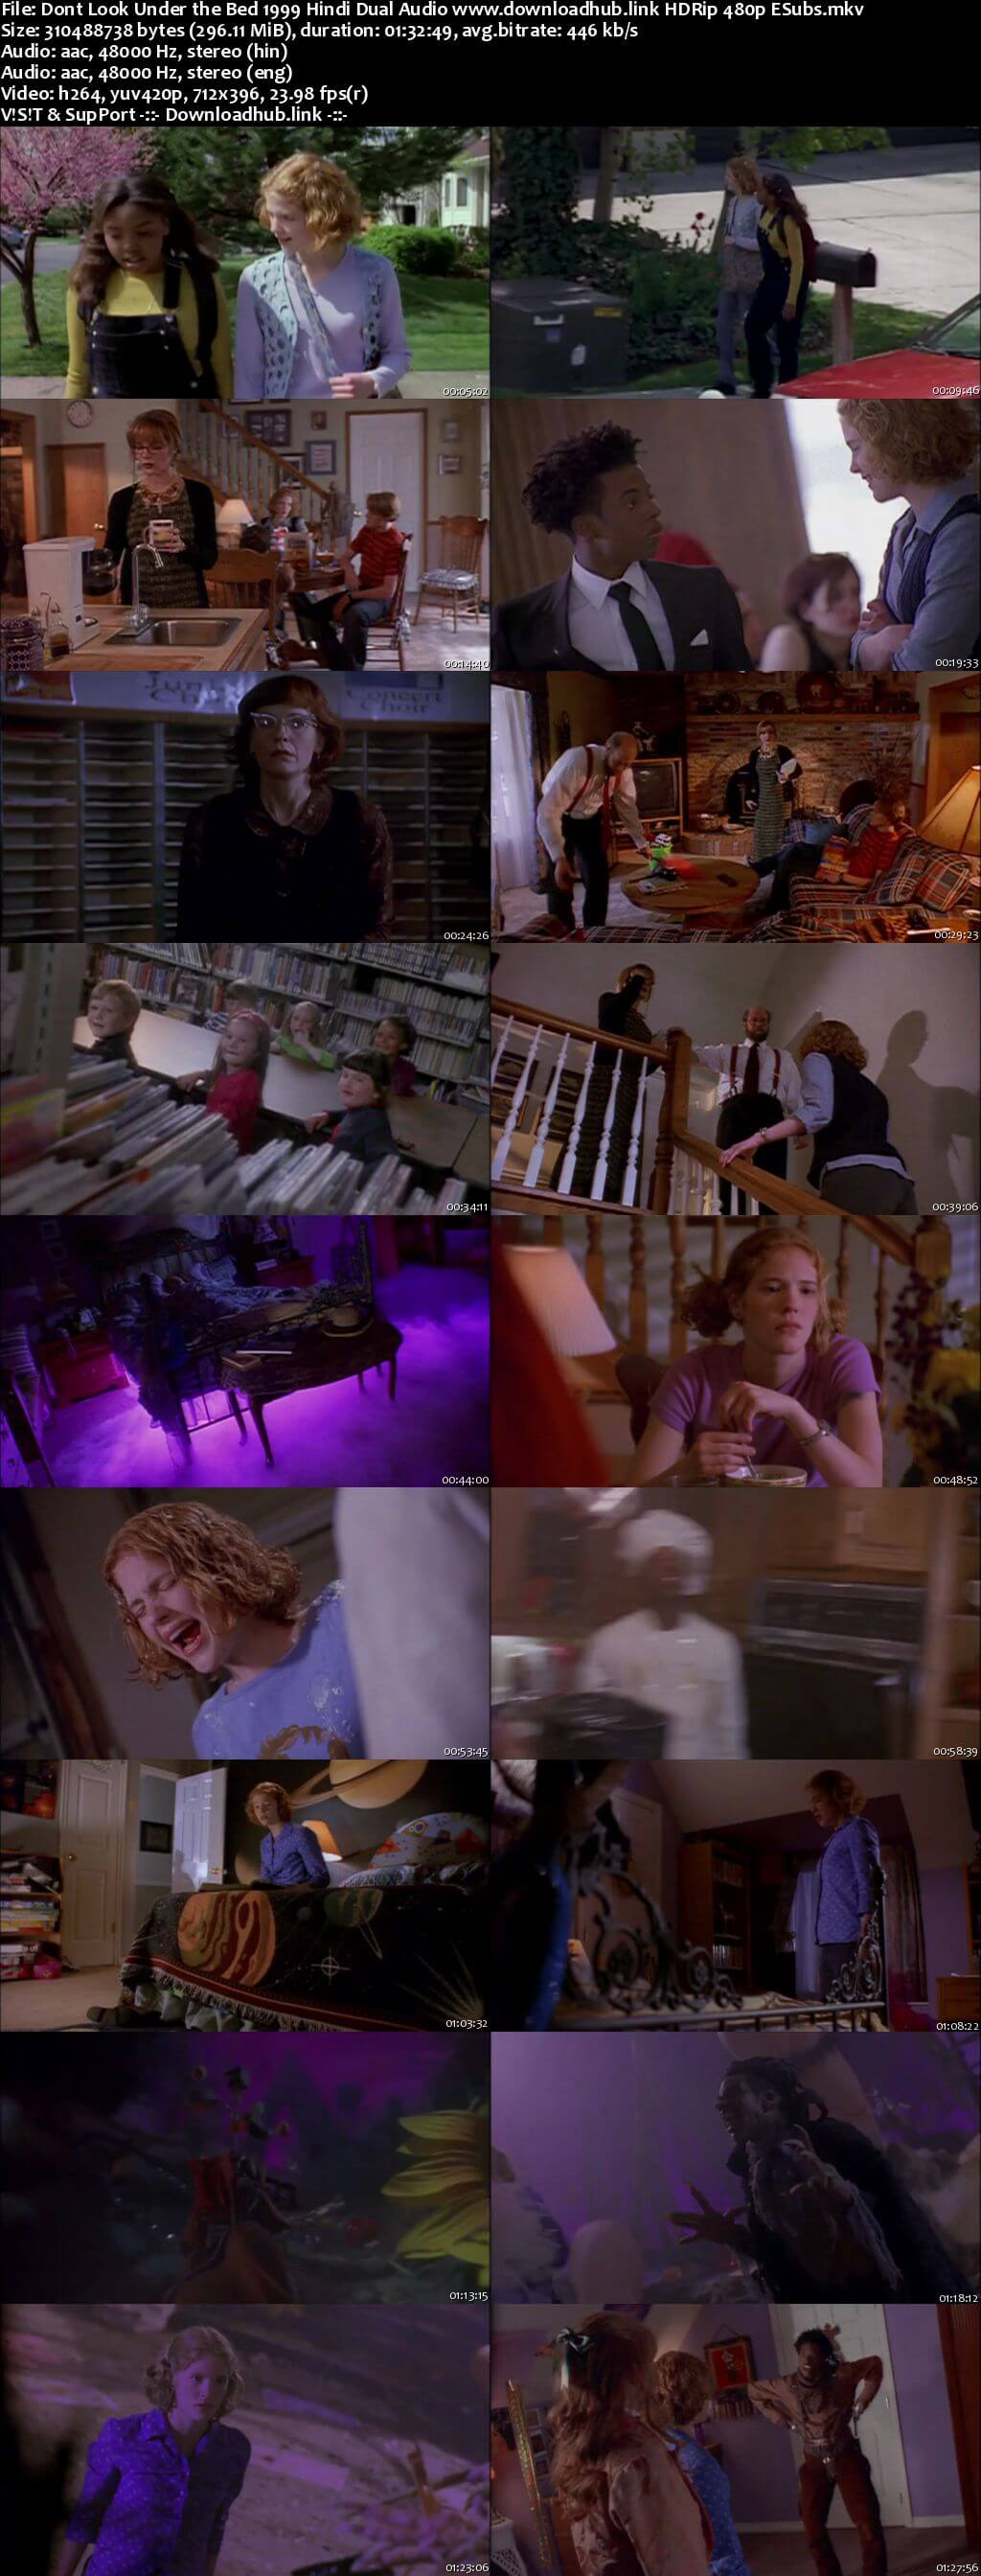 Dont Look Under the Bed 1999 Hindi Dual Audio 300MB HDRip 480p ESubs